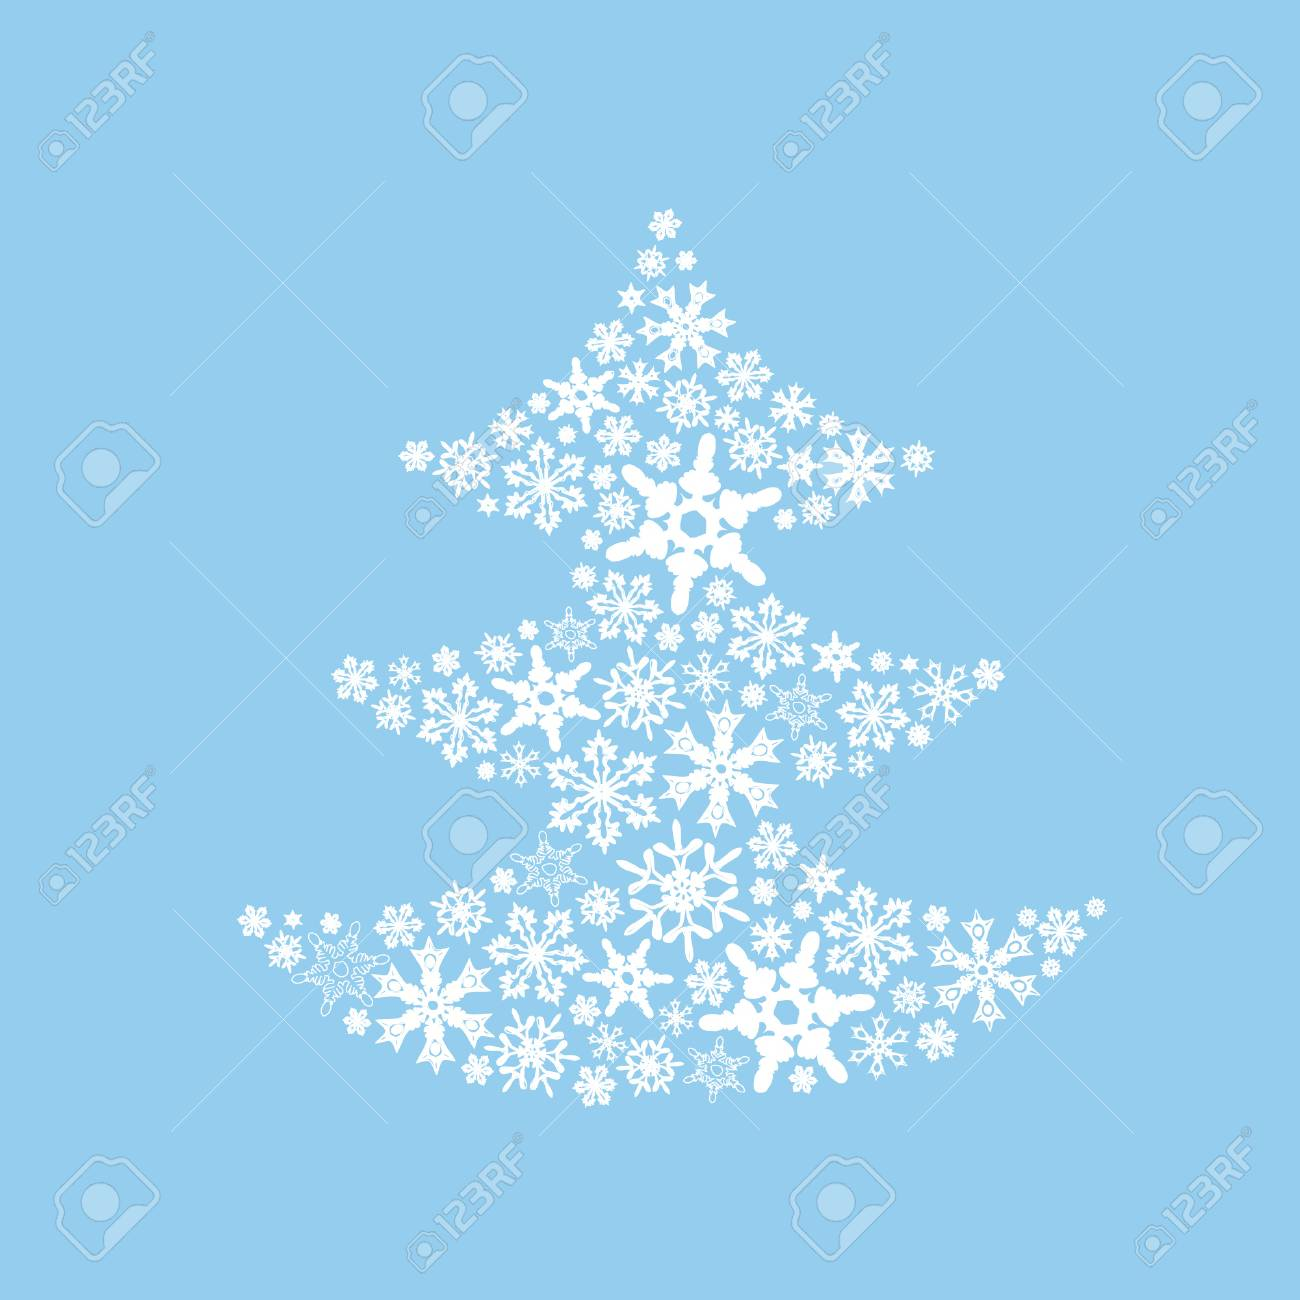 Christmas Holidays Pictures.Christmas Tree Draw By Snowflakes Original Picture To New Year